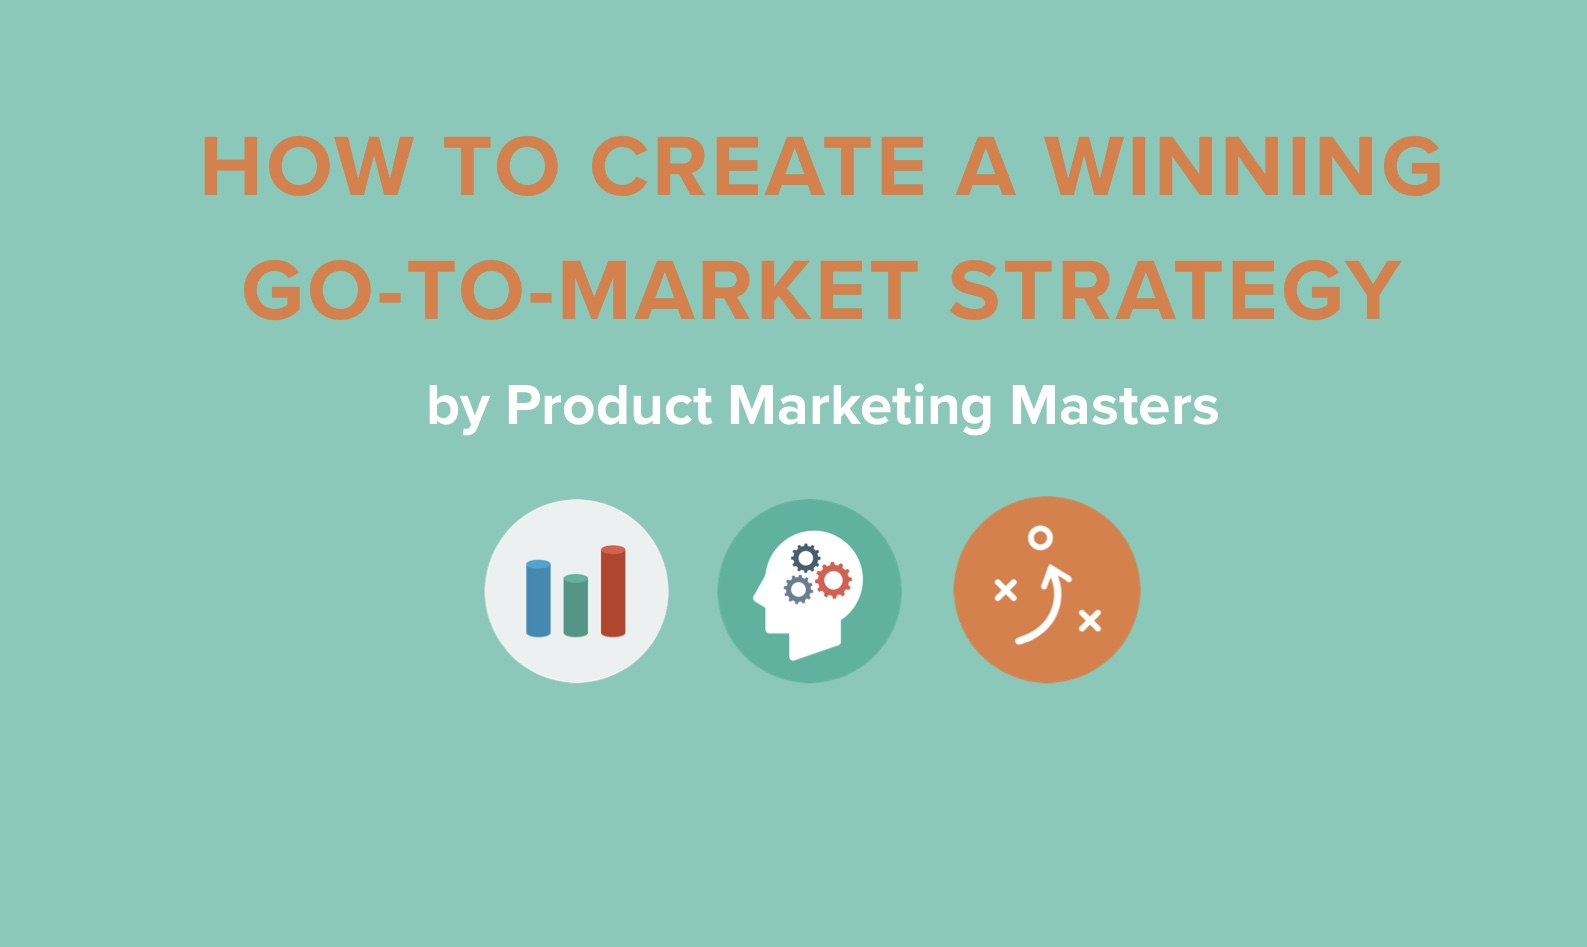 How to Create a Winning Go-To-Market Strategy